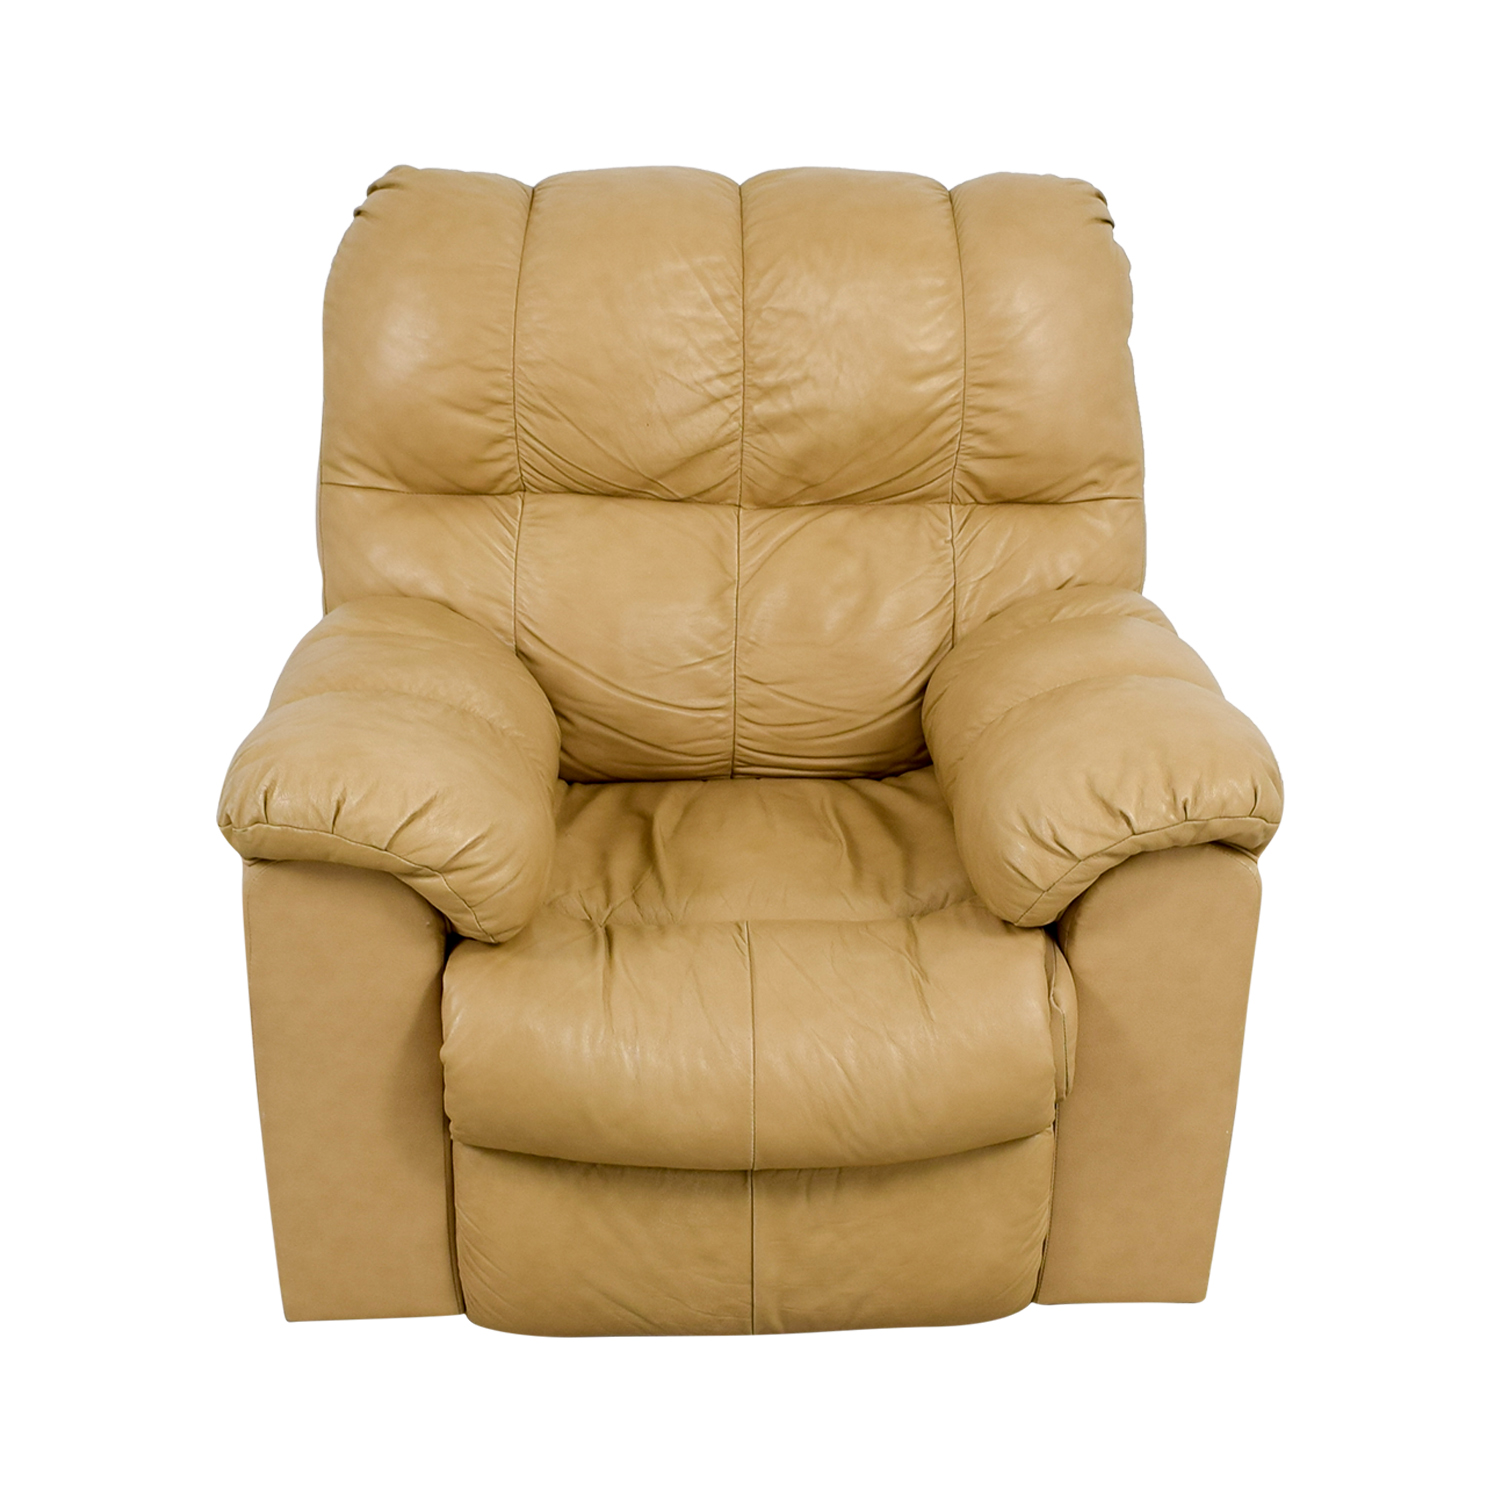 80 Off Ashley Furniture Ashley Furniture Tan Leather Recliner Chairs